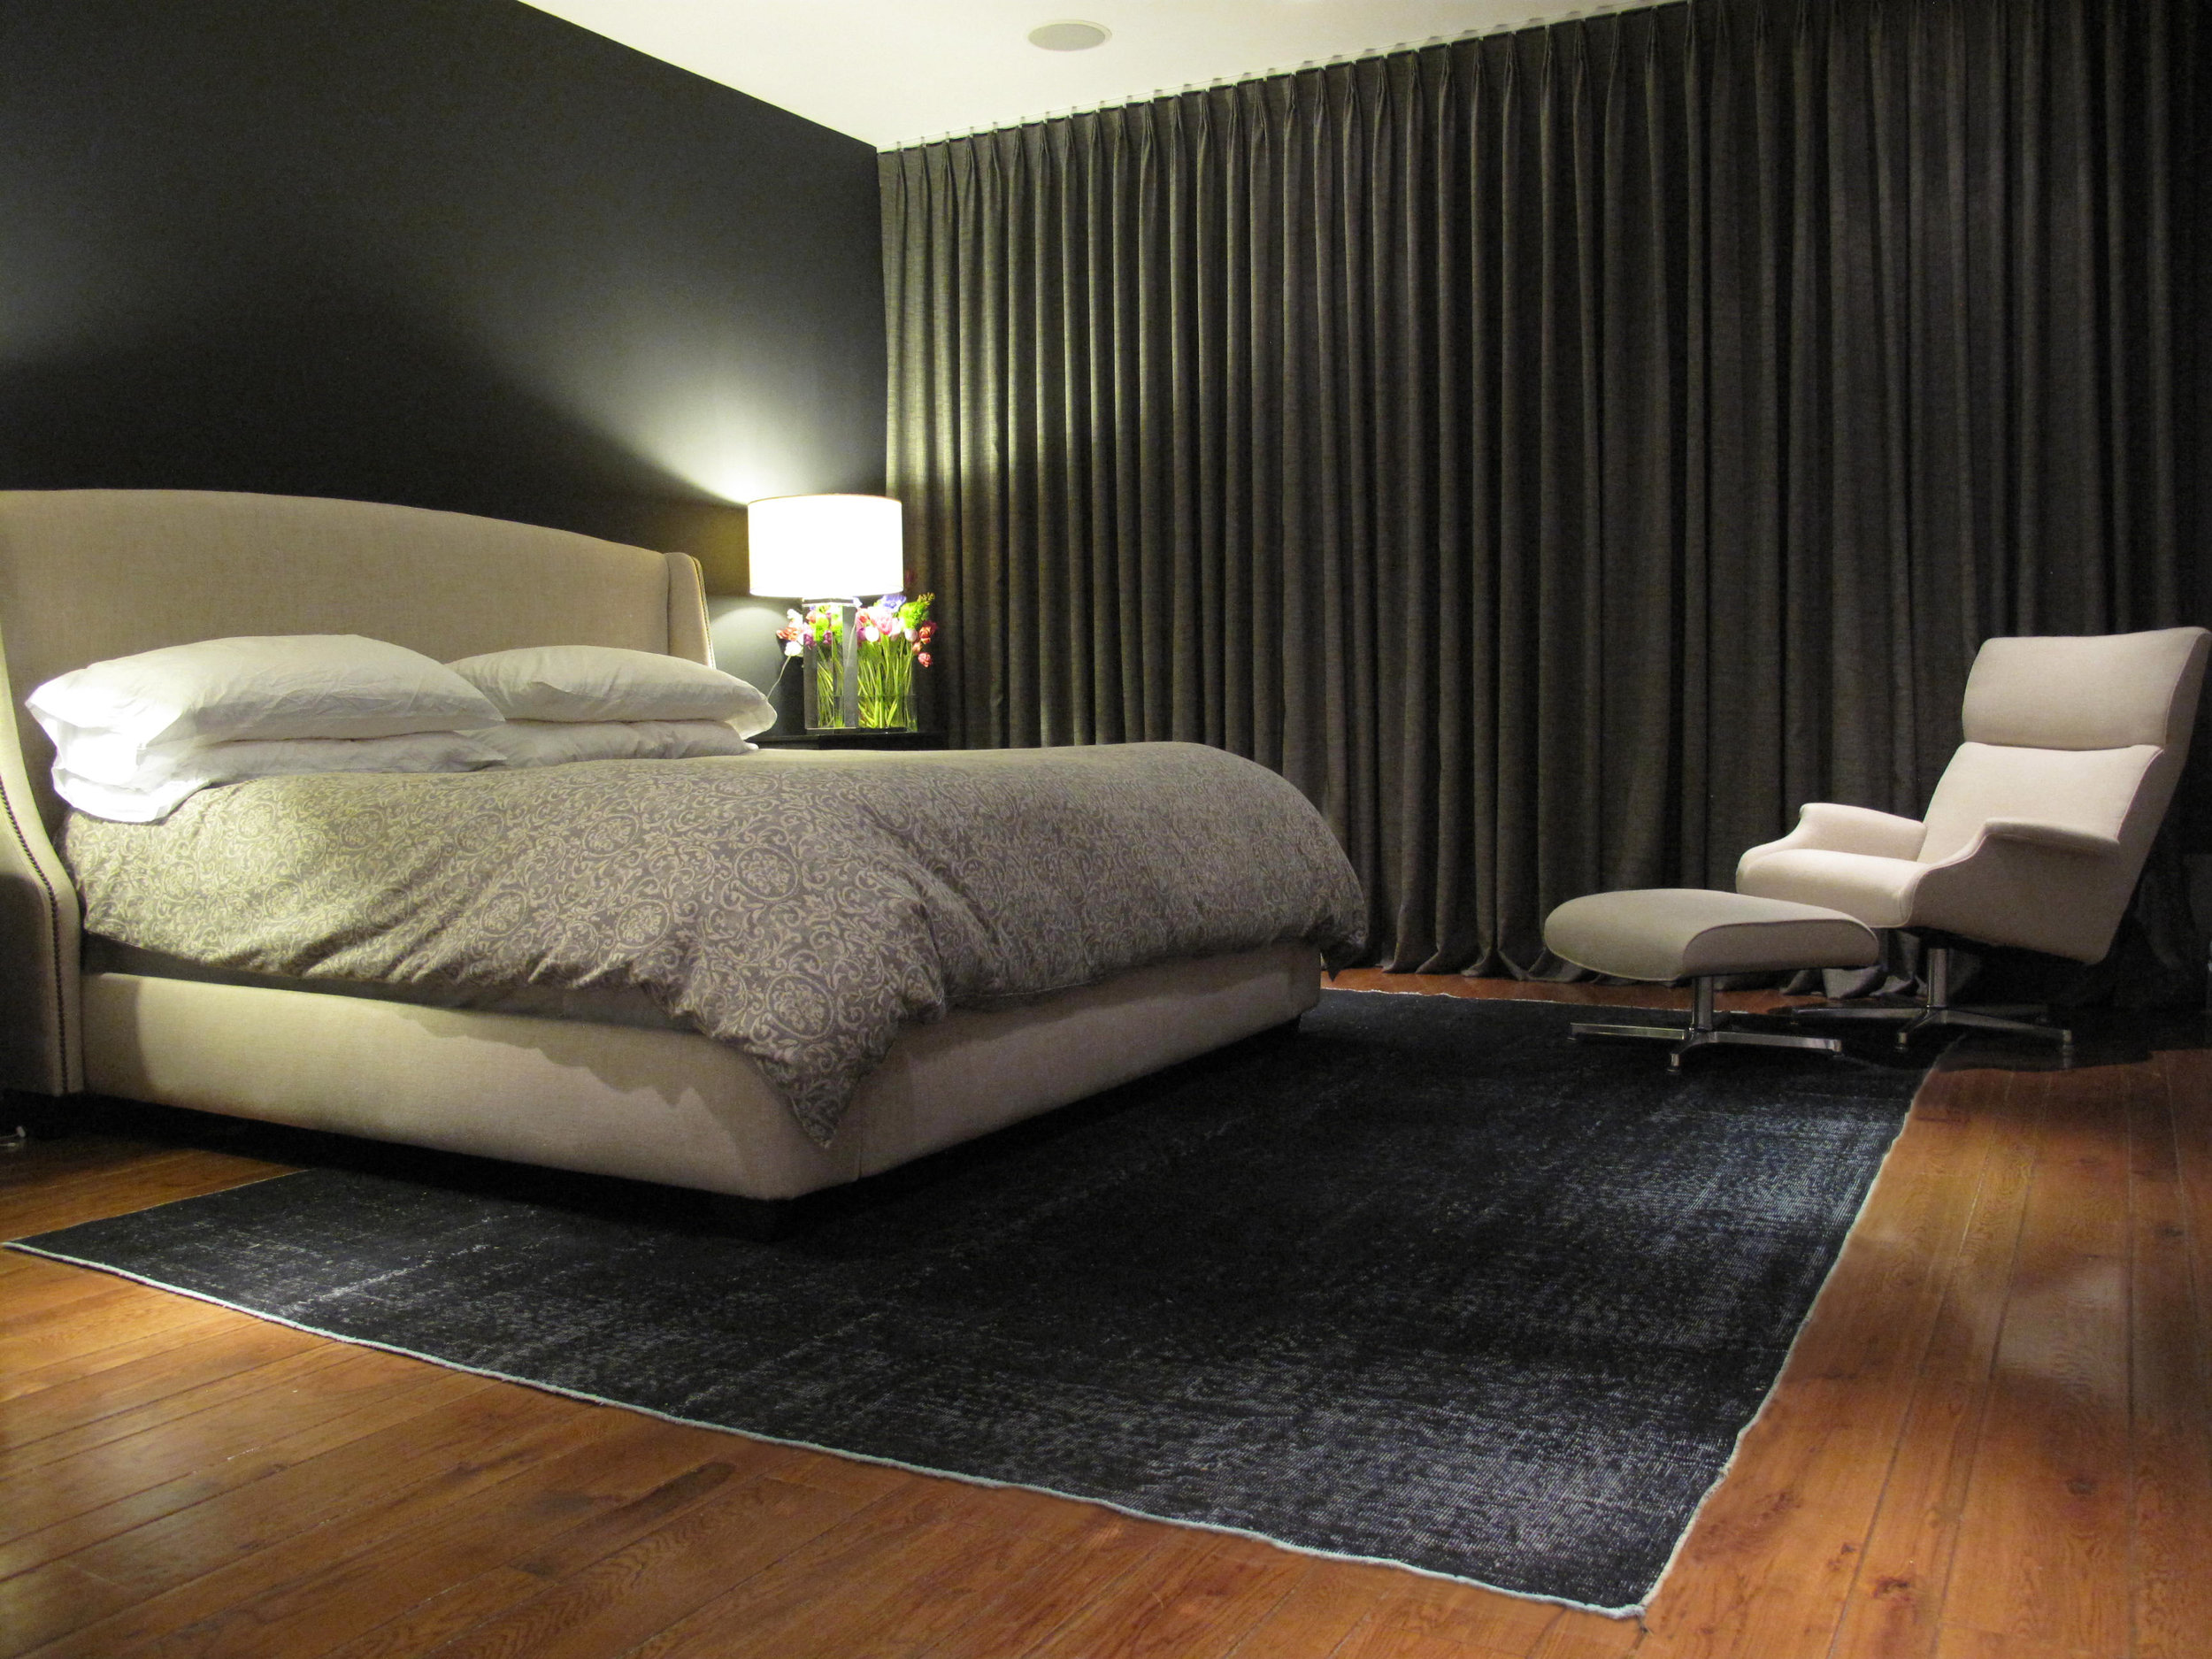 Fade To Black by Portola Paints, interior design by From the Inside